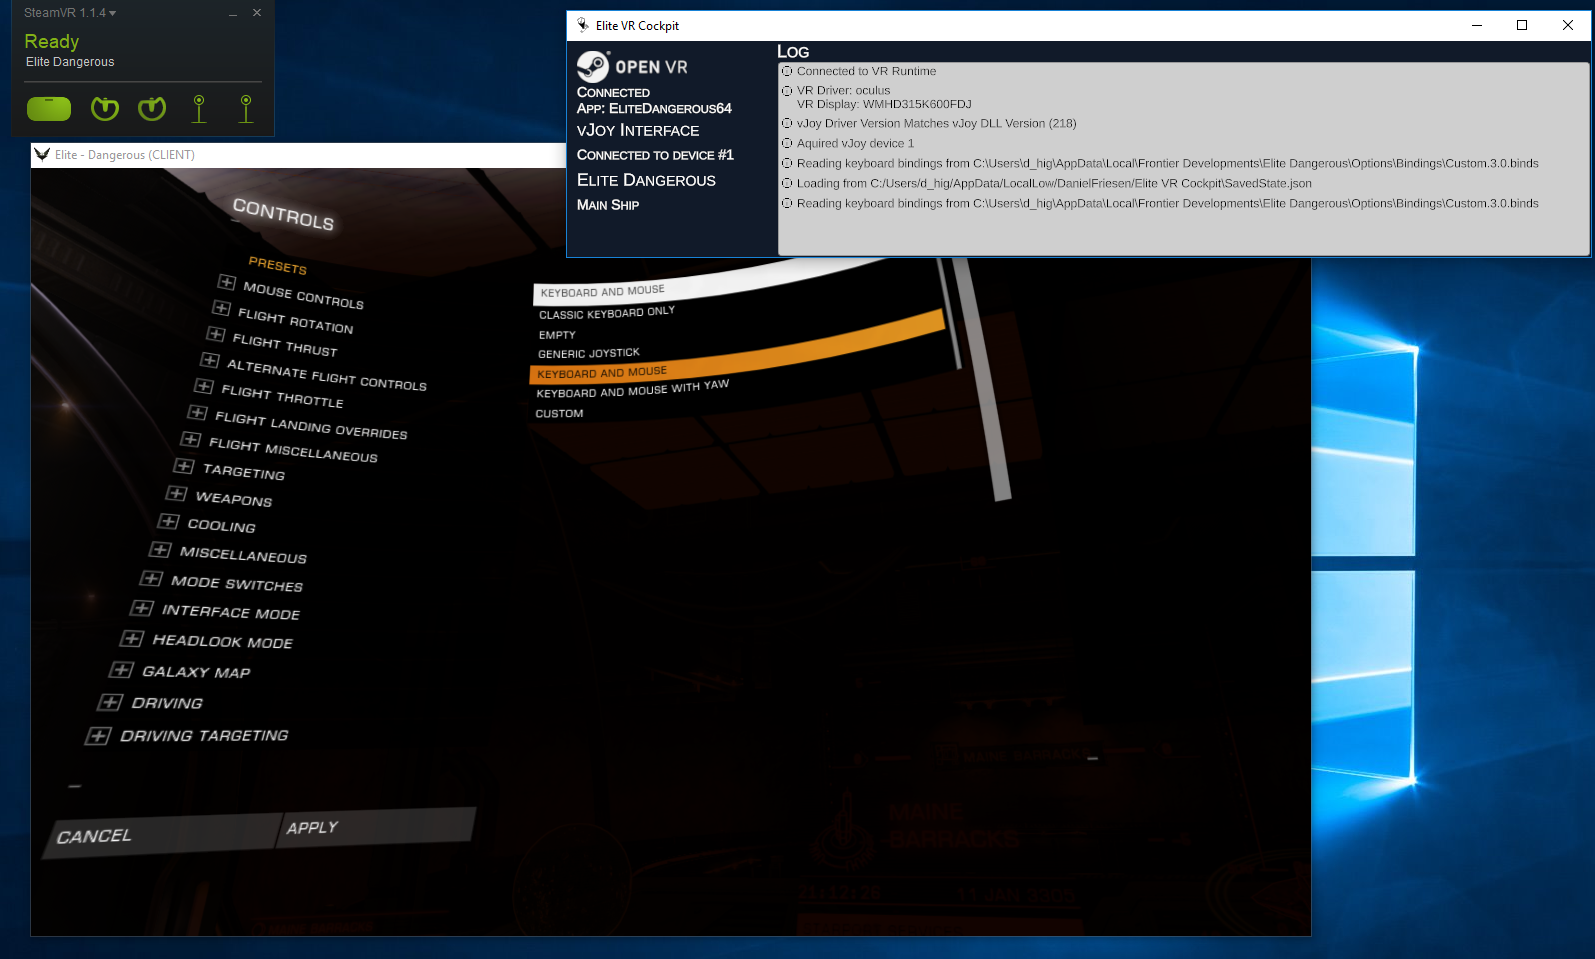 Oculus Rift: Detects in win7 compat (steamVR), but then no